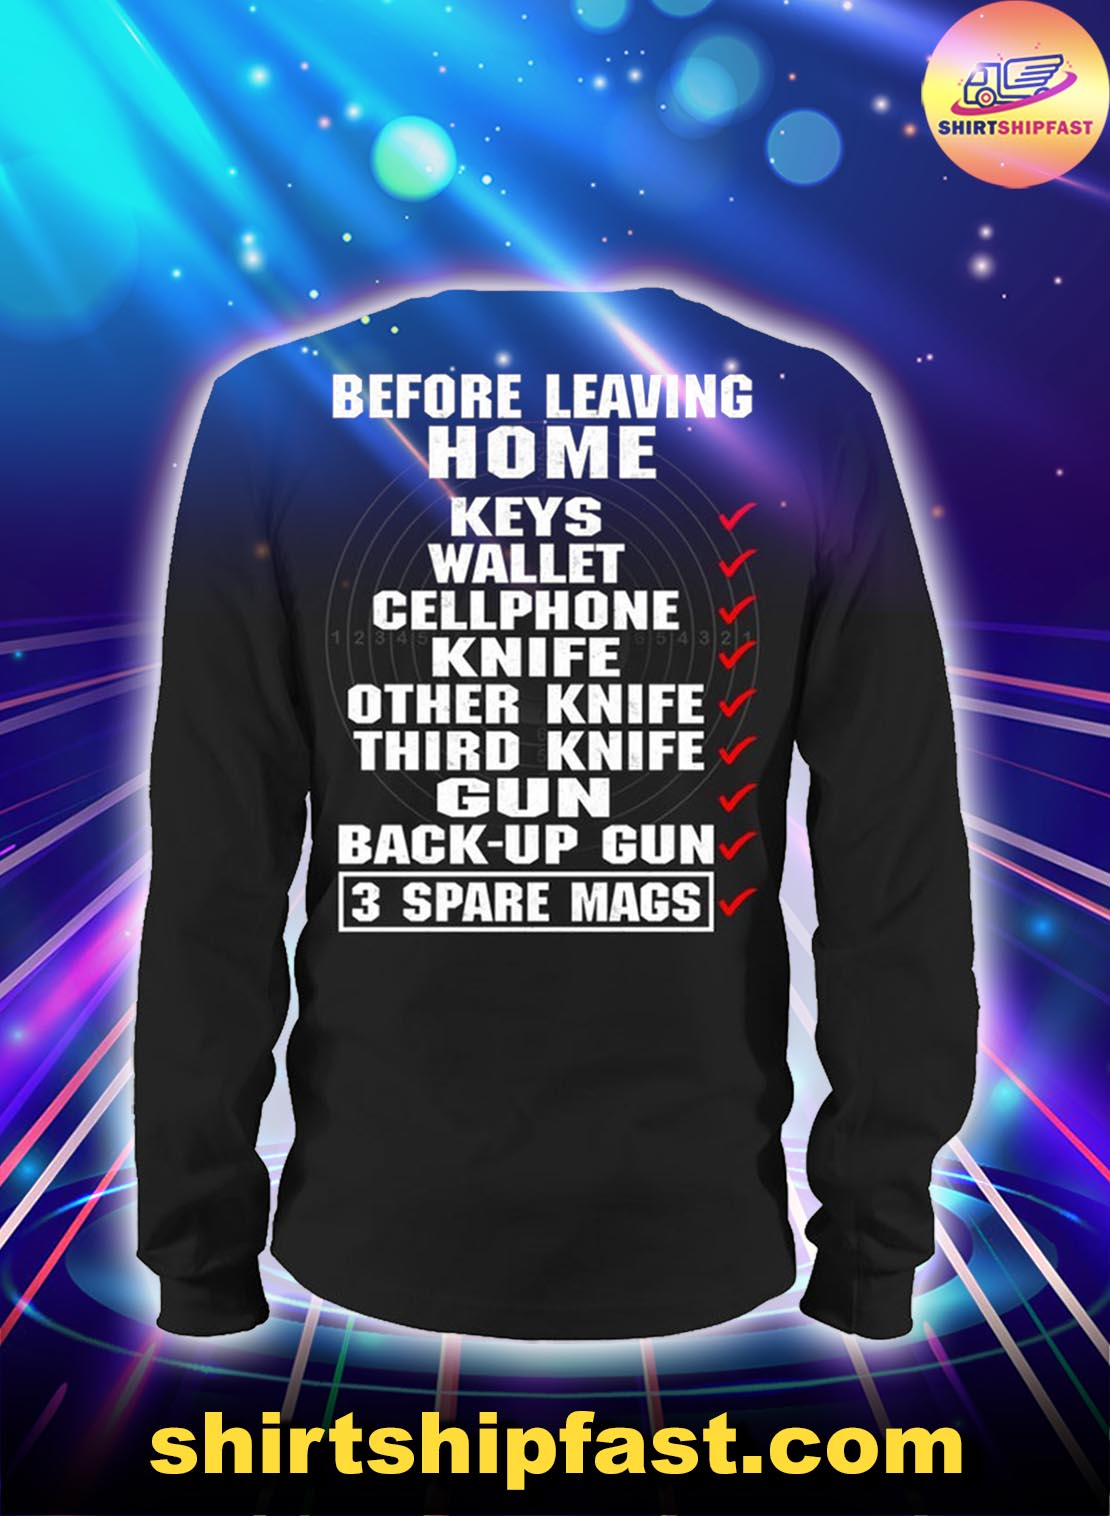 Before-leaving-home-keys-wallet-cellphone-3-spare-mags-long-sleeve-tee - 2